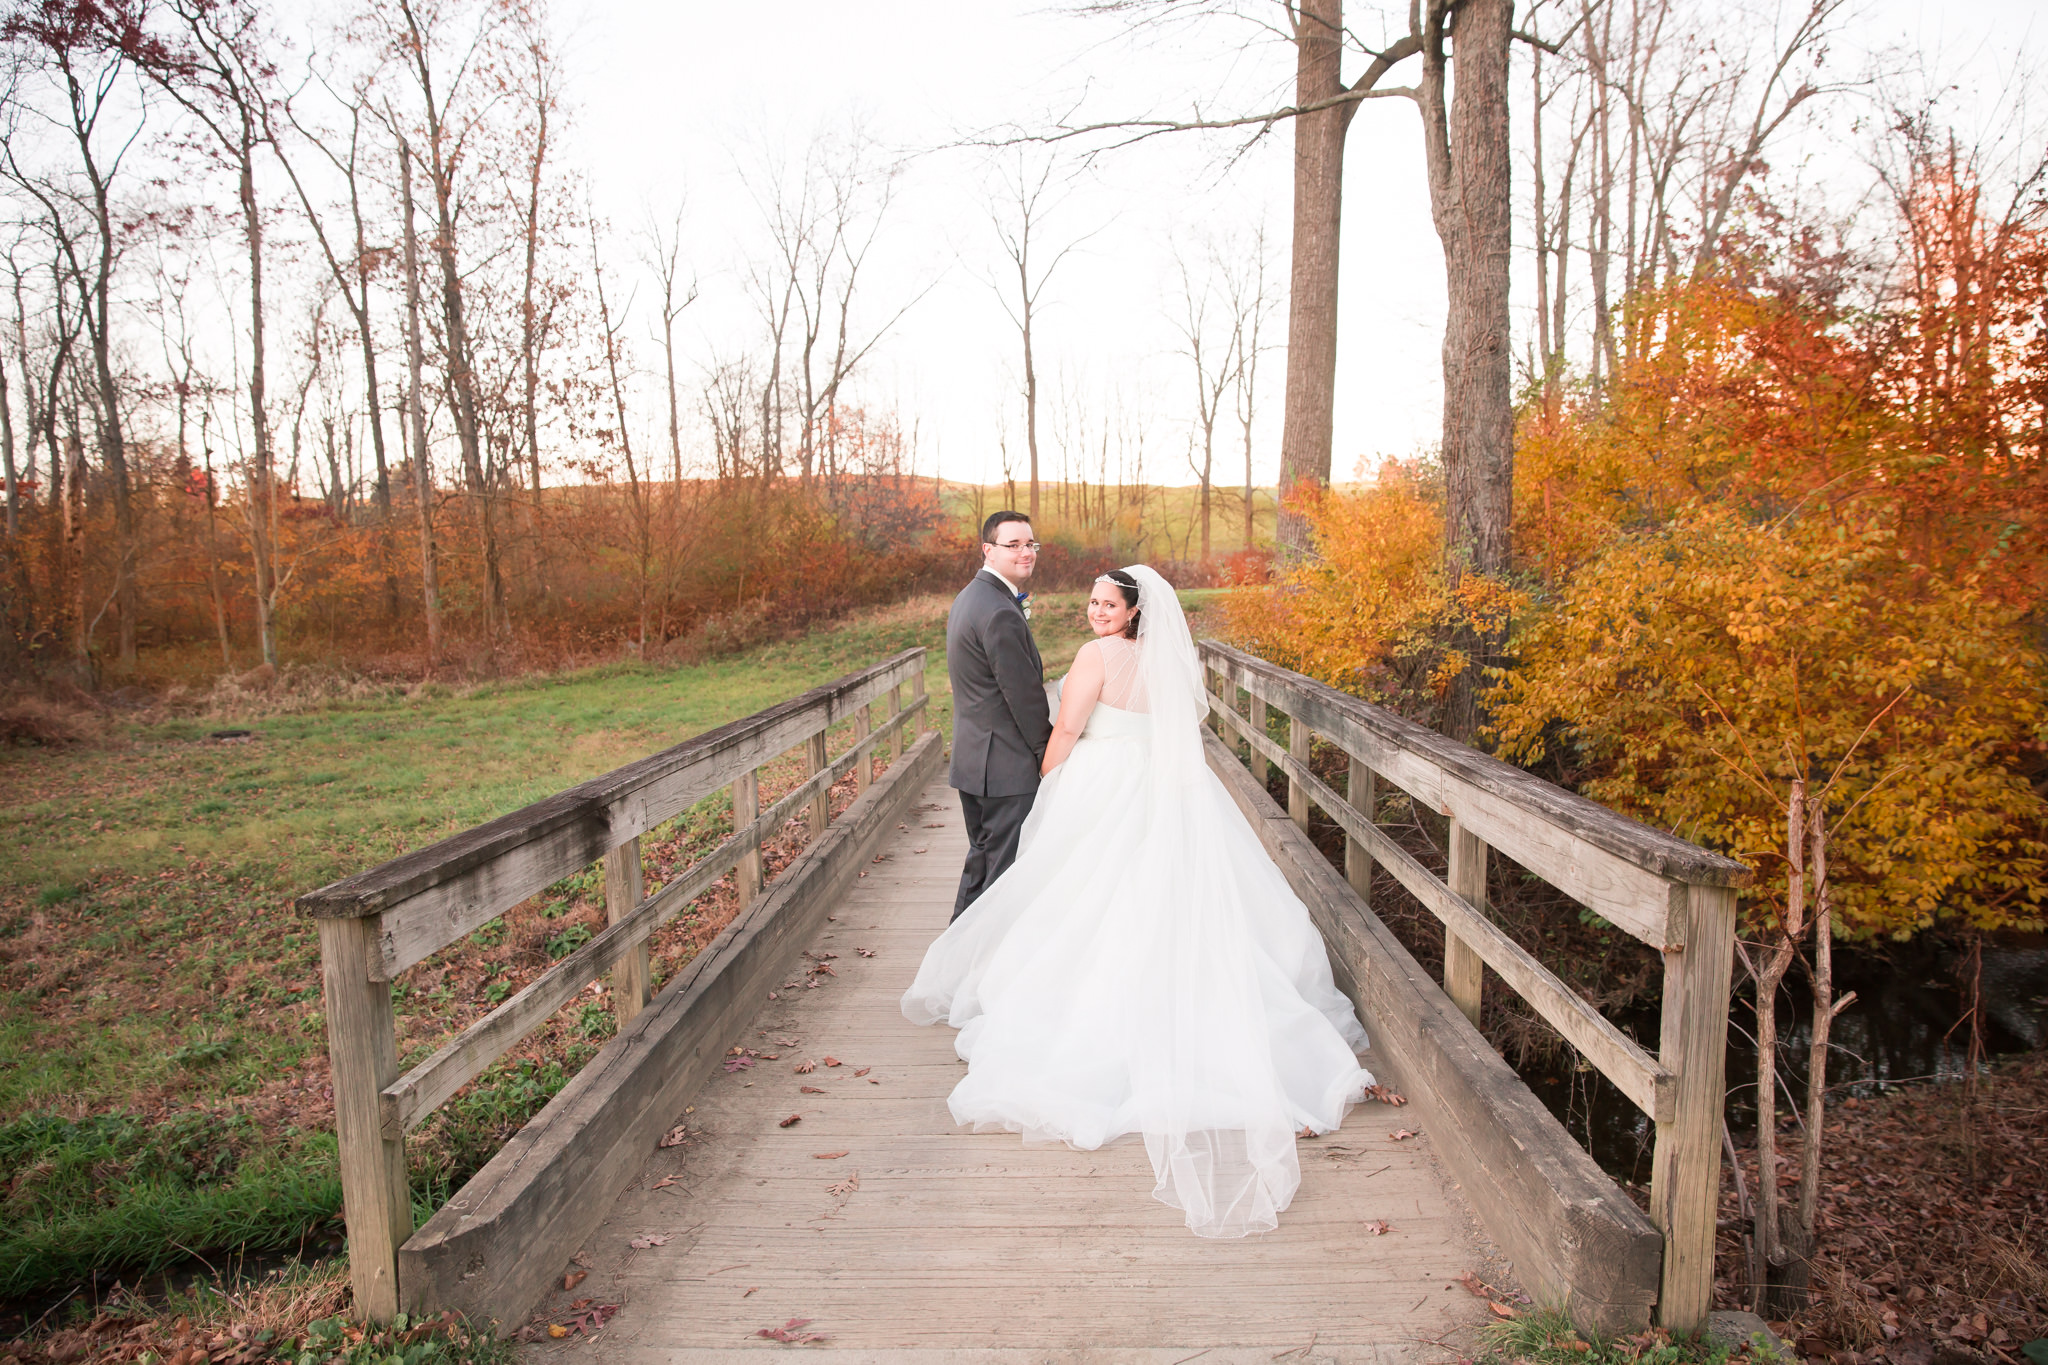 Beautiful fall day for Kasey and Justins wedding!